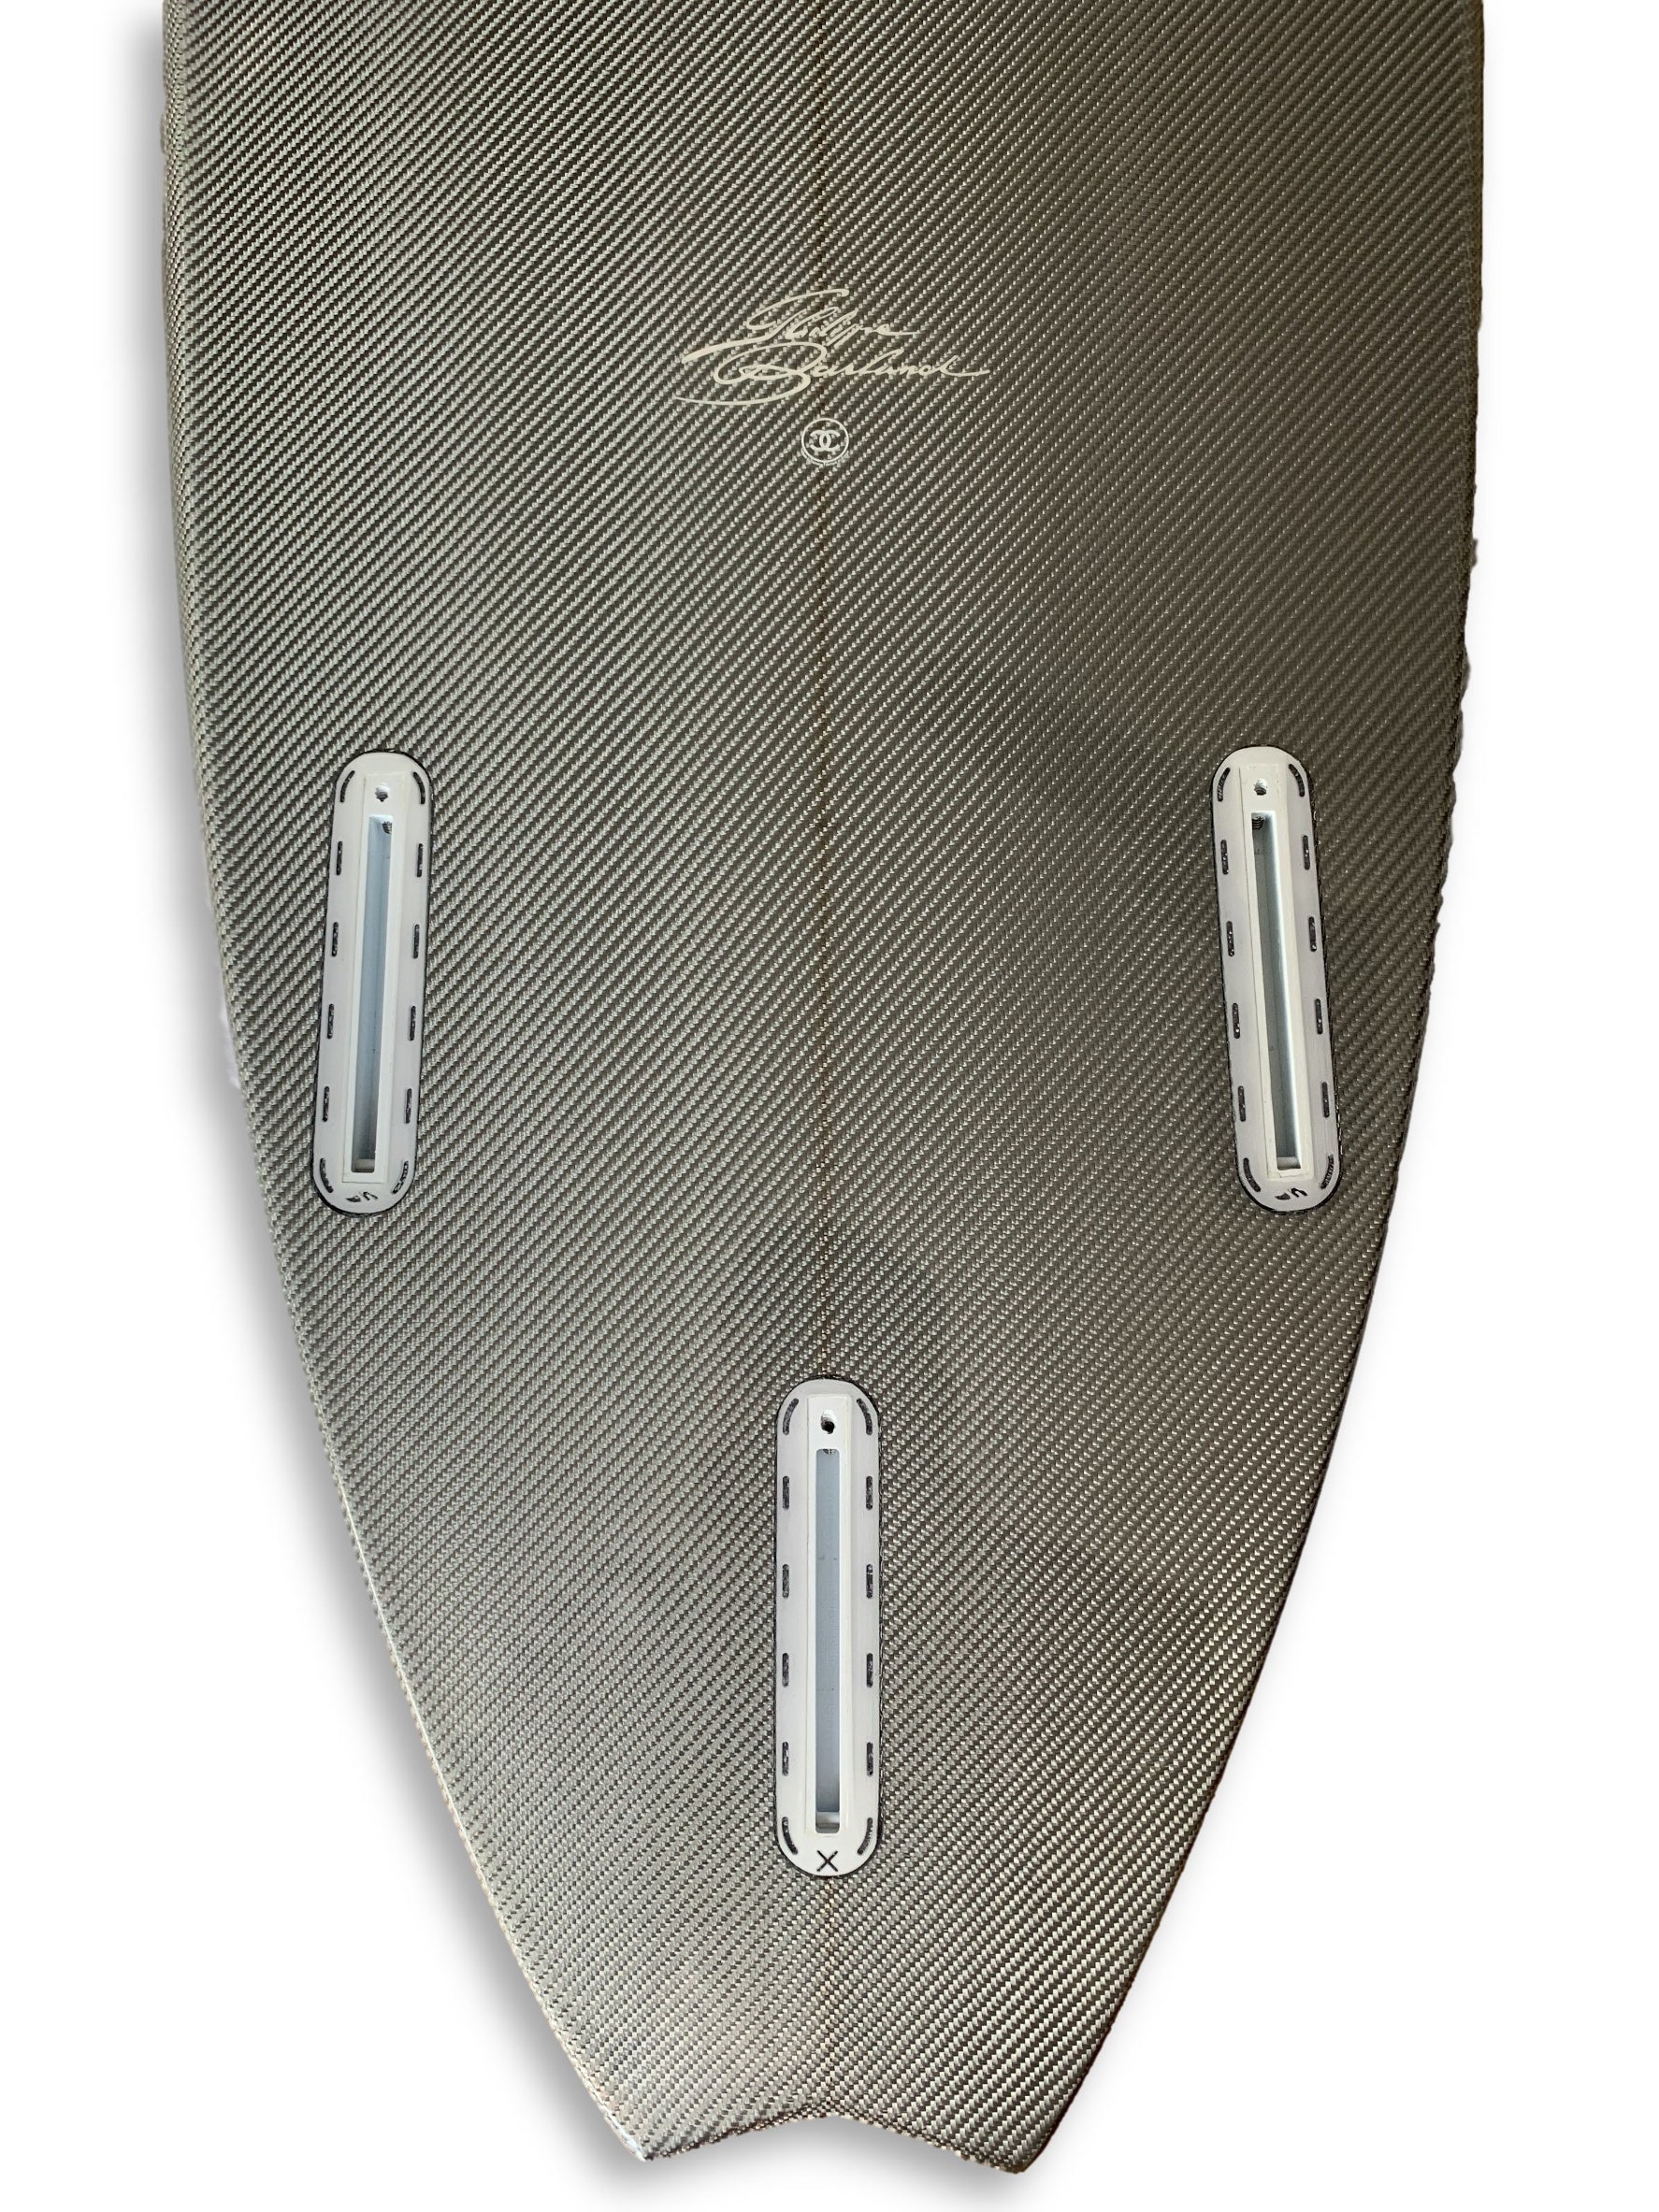 c8536e05d654 ... Chanel x Philippe Barland Limited Edition Silver/Chrome Carbon Surfboard  ...